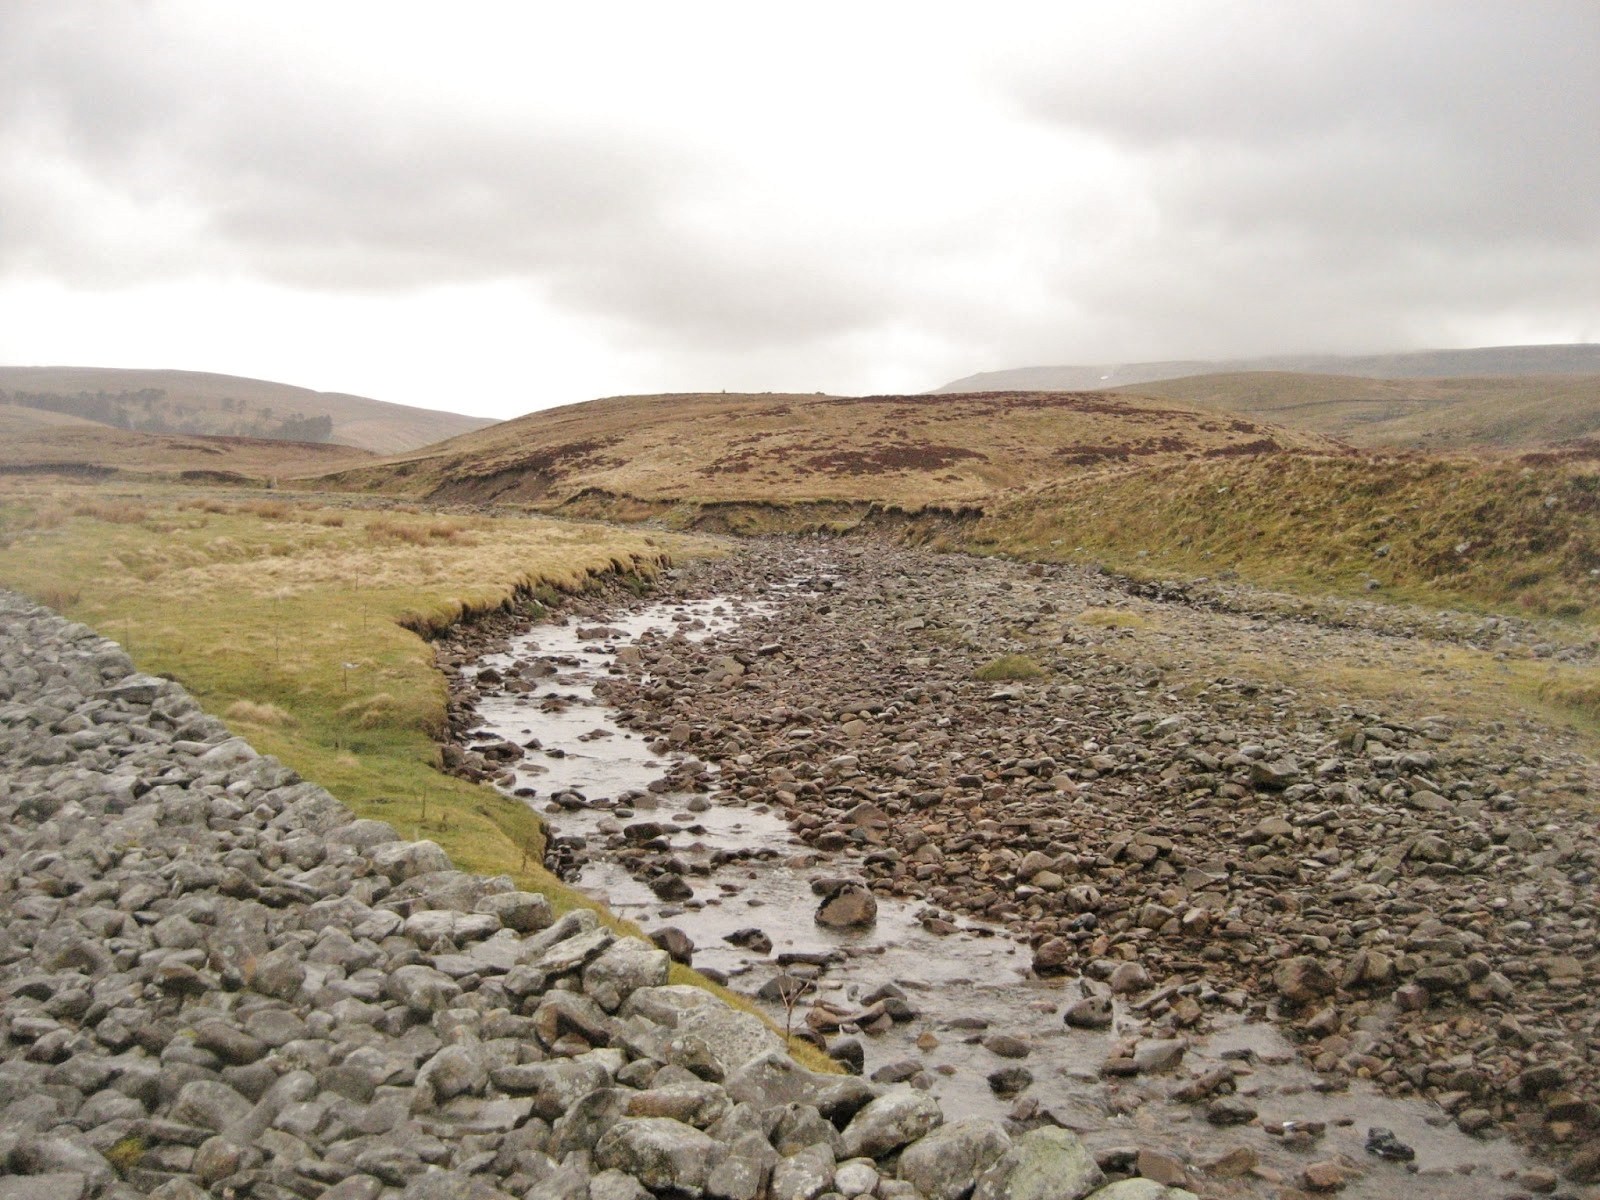 Moraine ridge at Brown Hills alongside Kingsdale Beck, just north of Yordas Cave. Stephen Oldfield